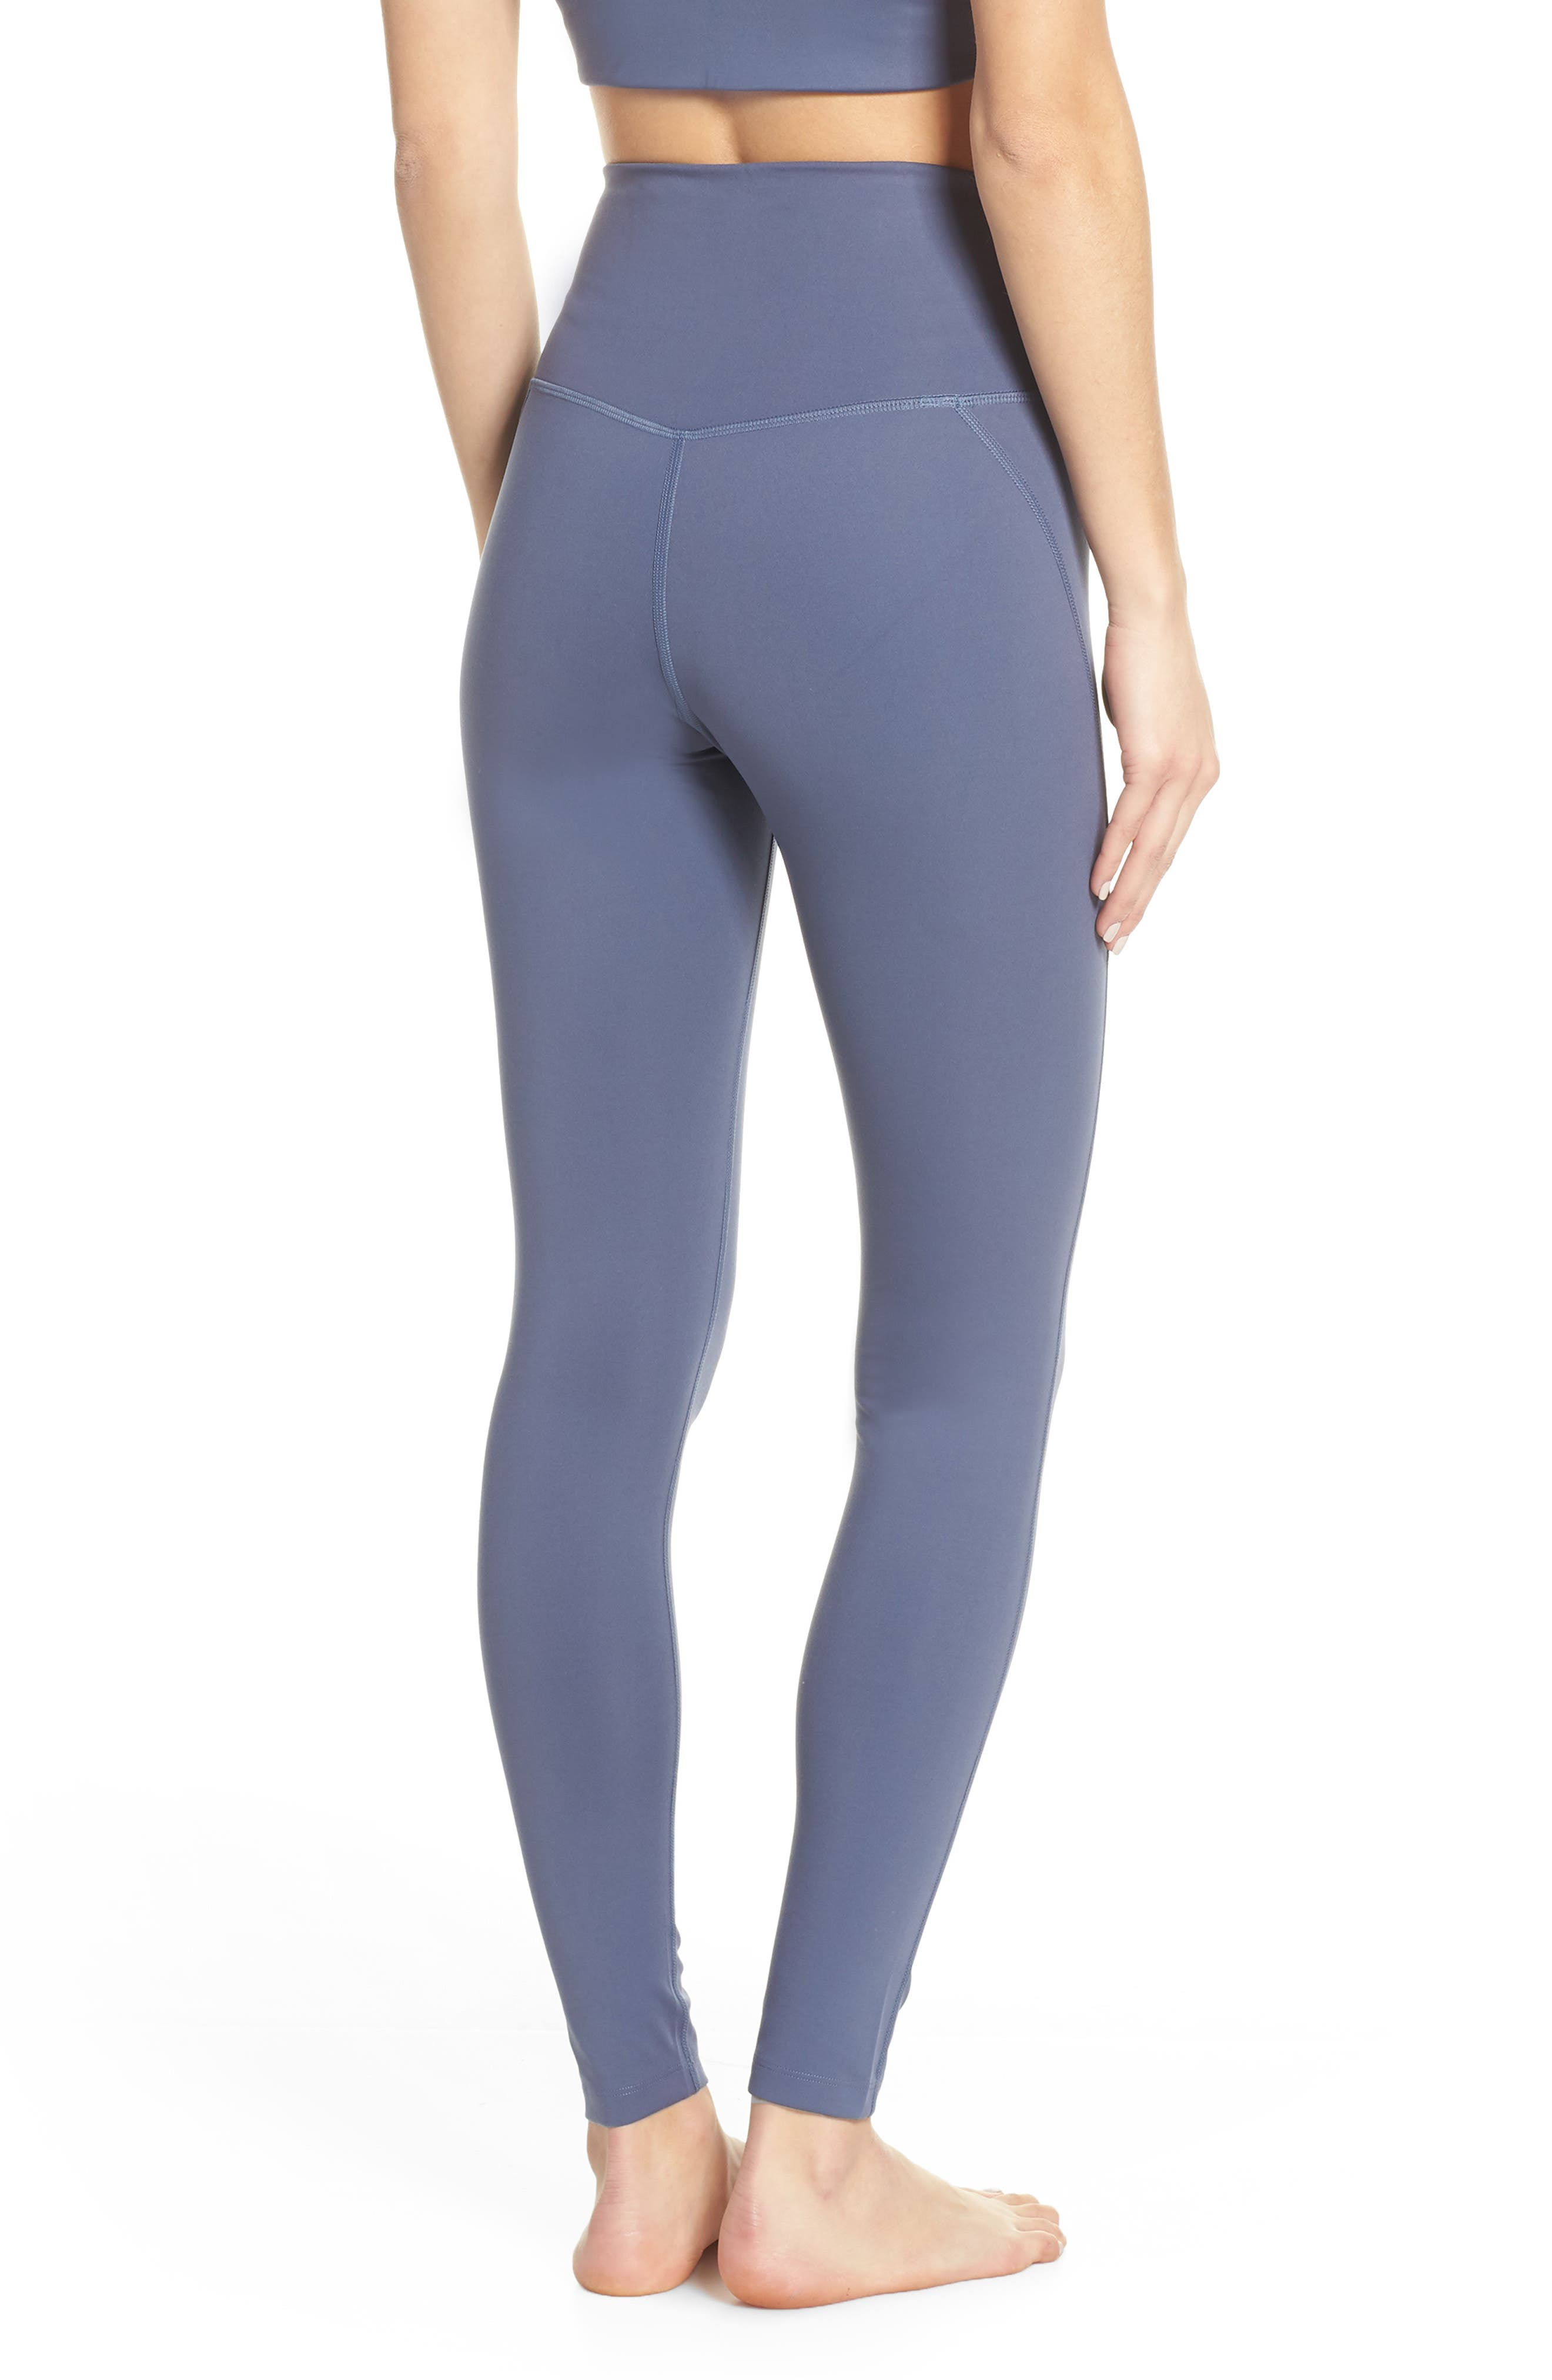 bf3fd30857 Women's Girlfriend Collective Workout Clothes & Activewear | Nordstrom